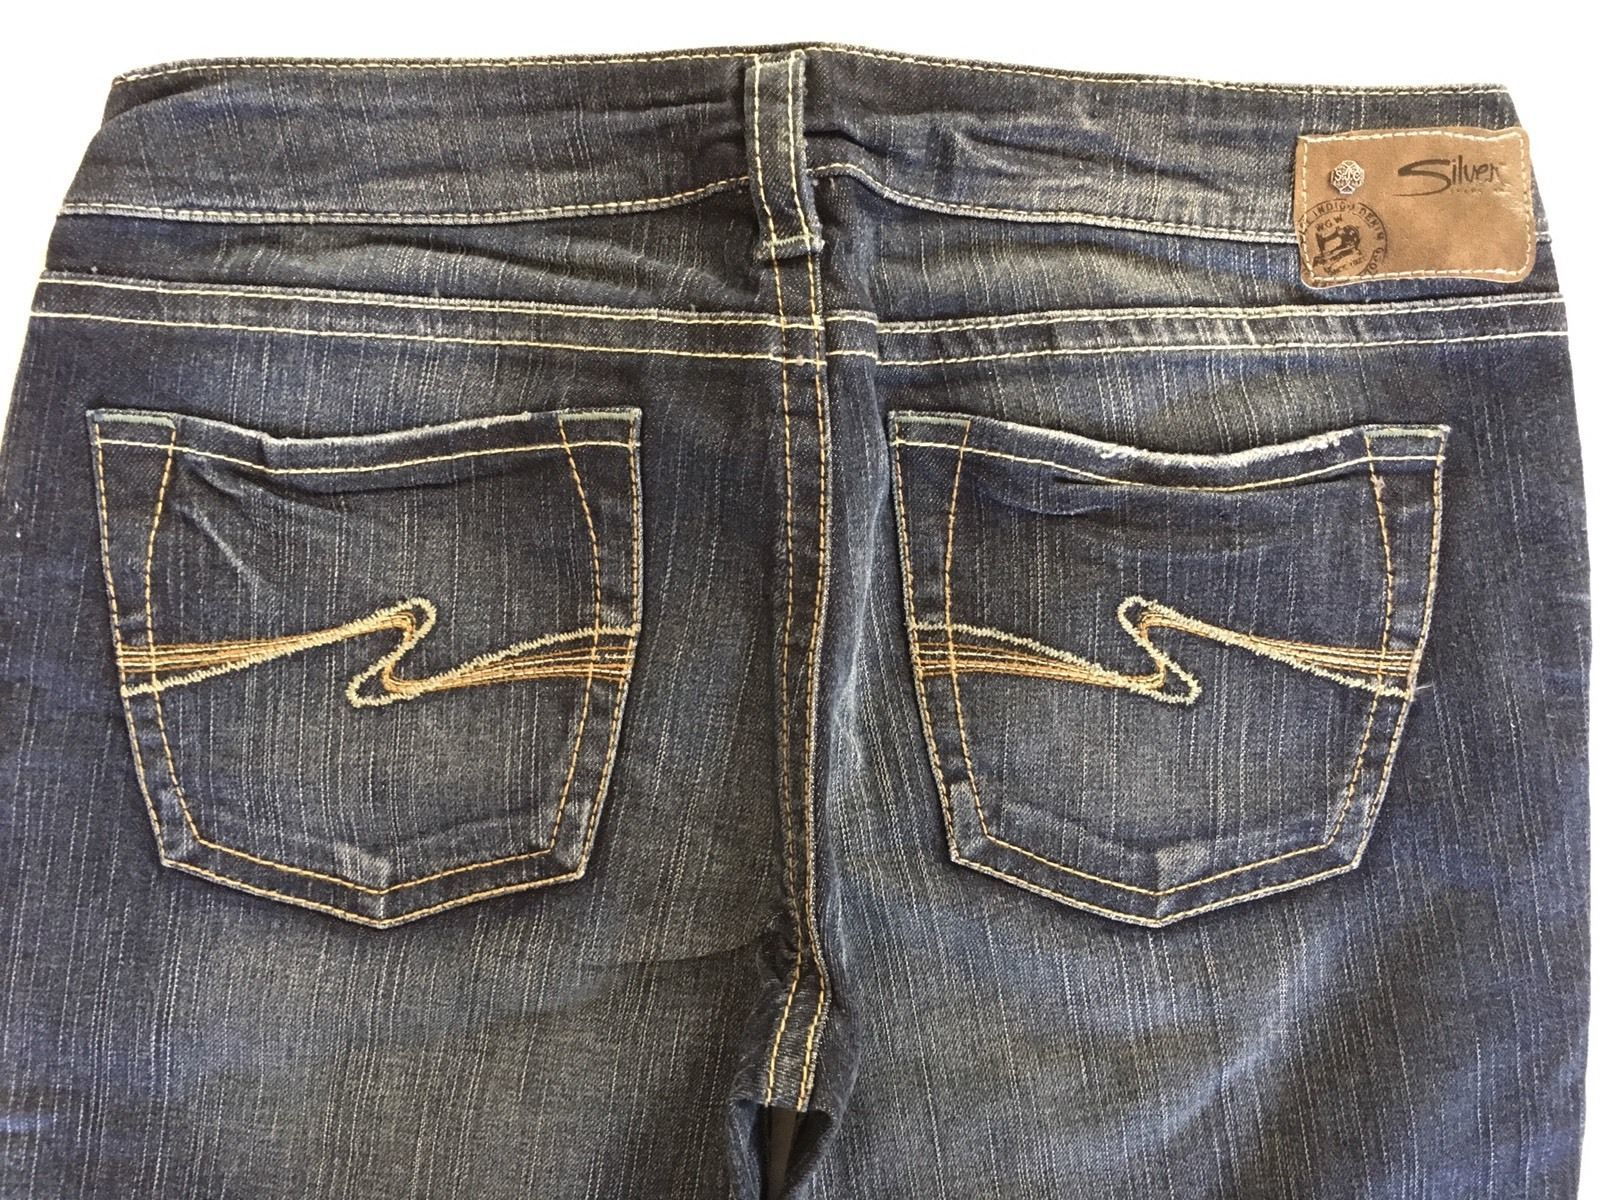 New SILVER Jeans Sale Buckle Dark Mid Rise Aiko Denim Jean Stretch Shorts 32